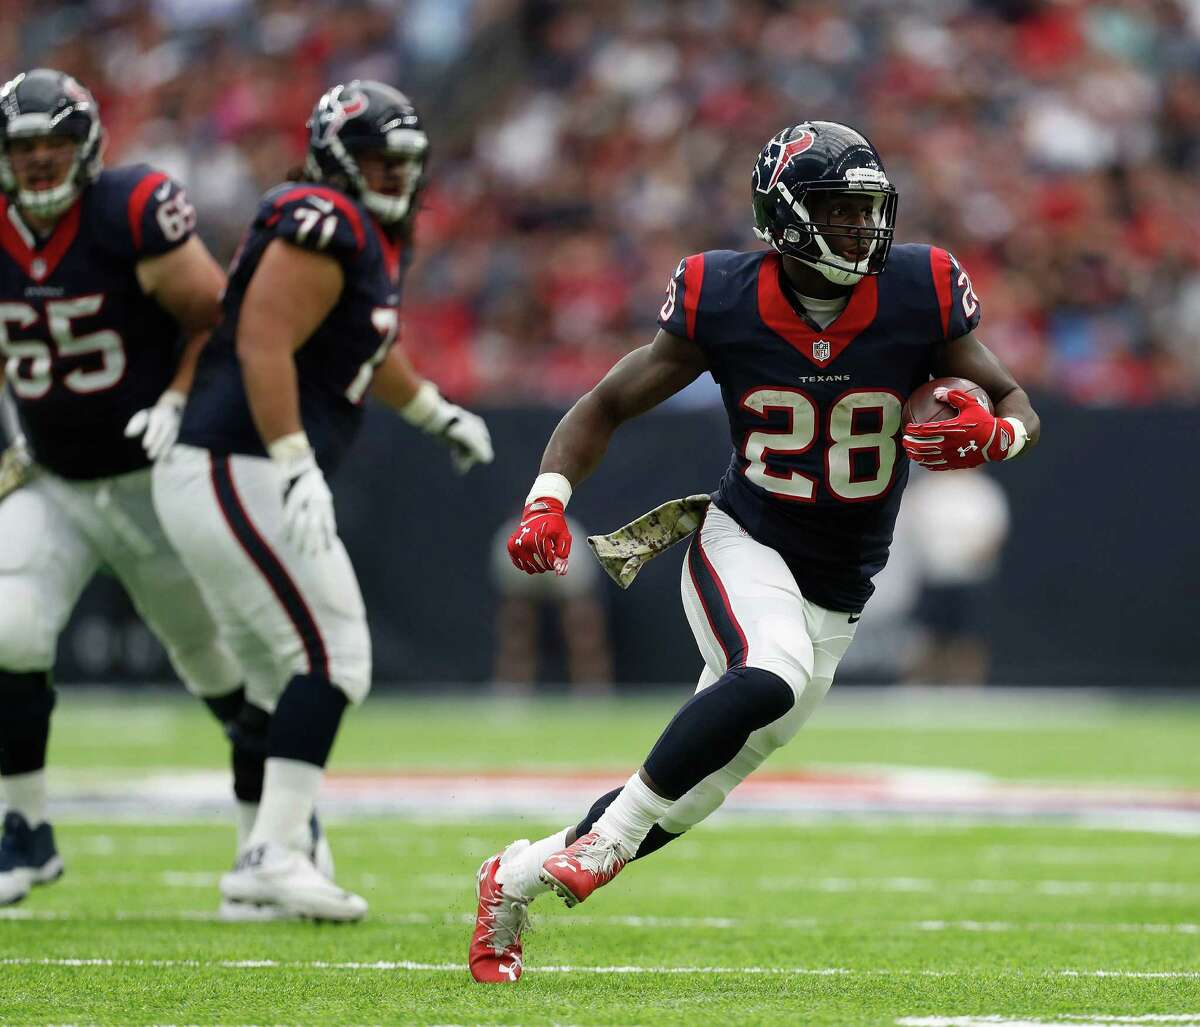 Houston Texans running back Alfred Blue (28) runs the ball for yardage during the fourth quarter an NFL football game at NRG Stadium, Sunday,Oct. 30, 2016 in Houston.